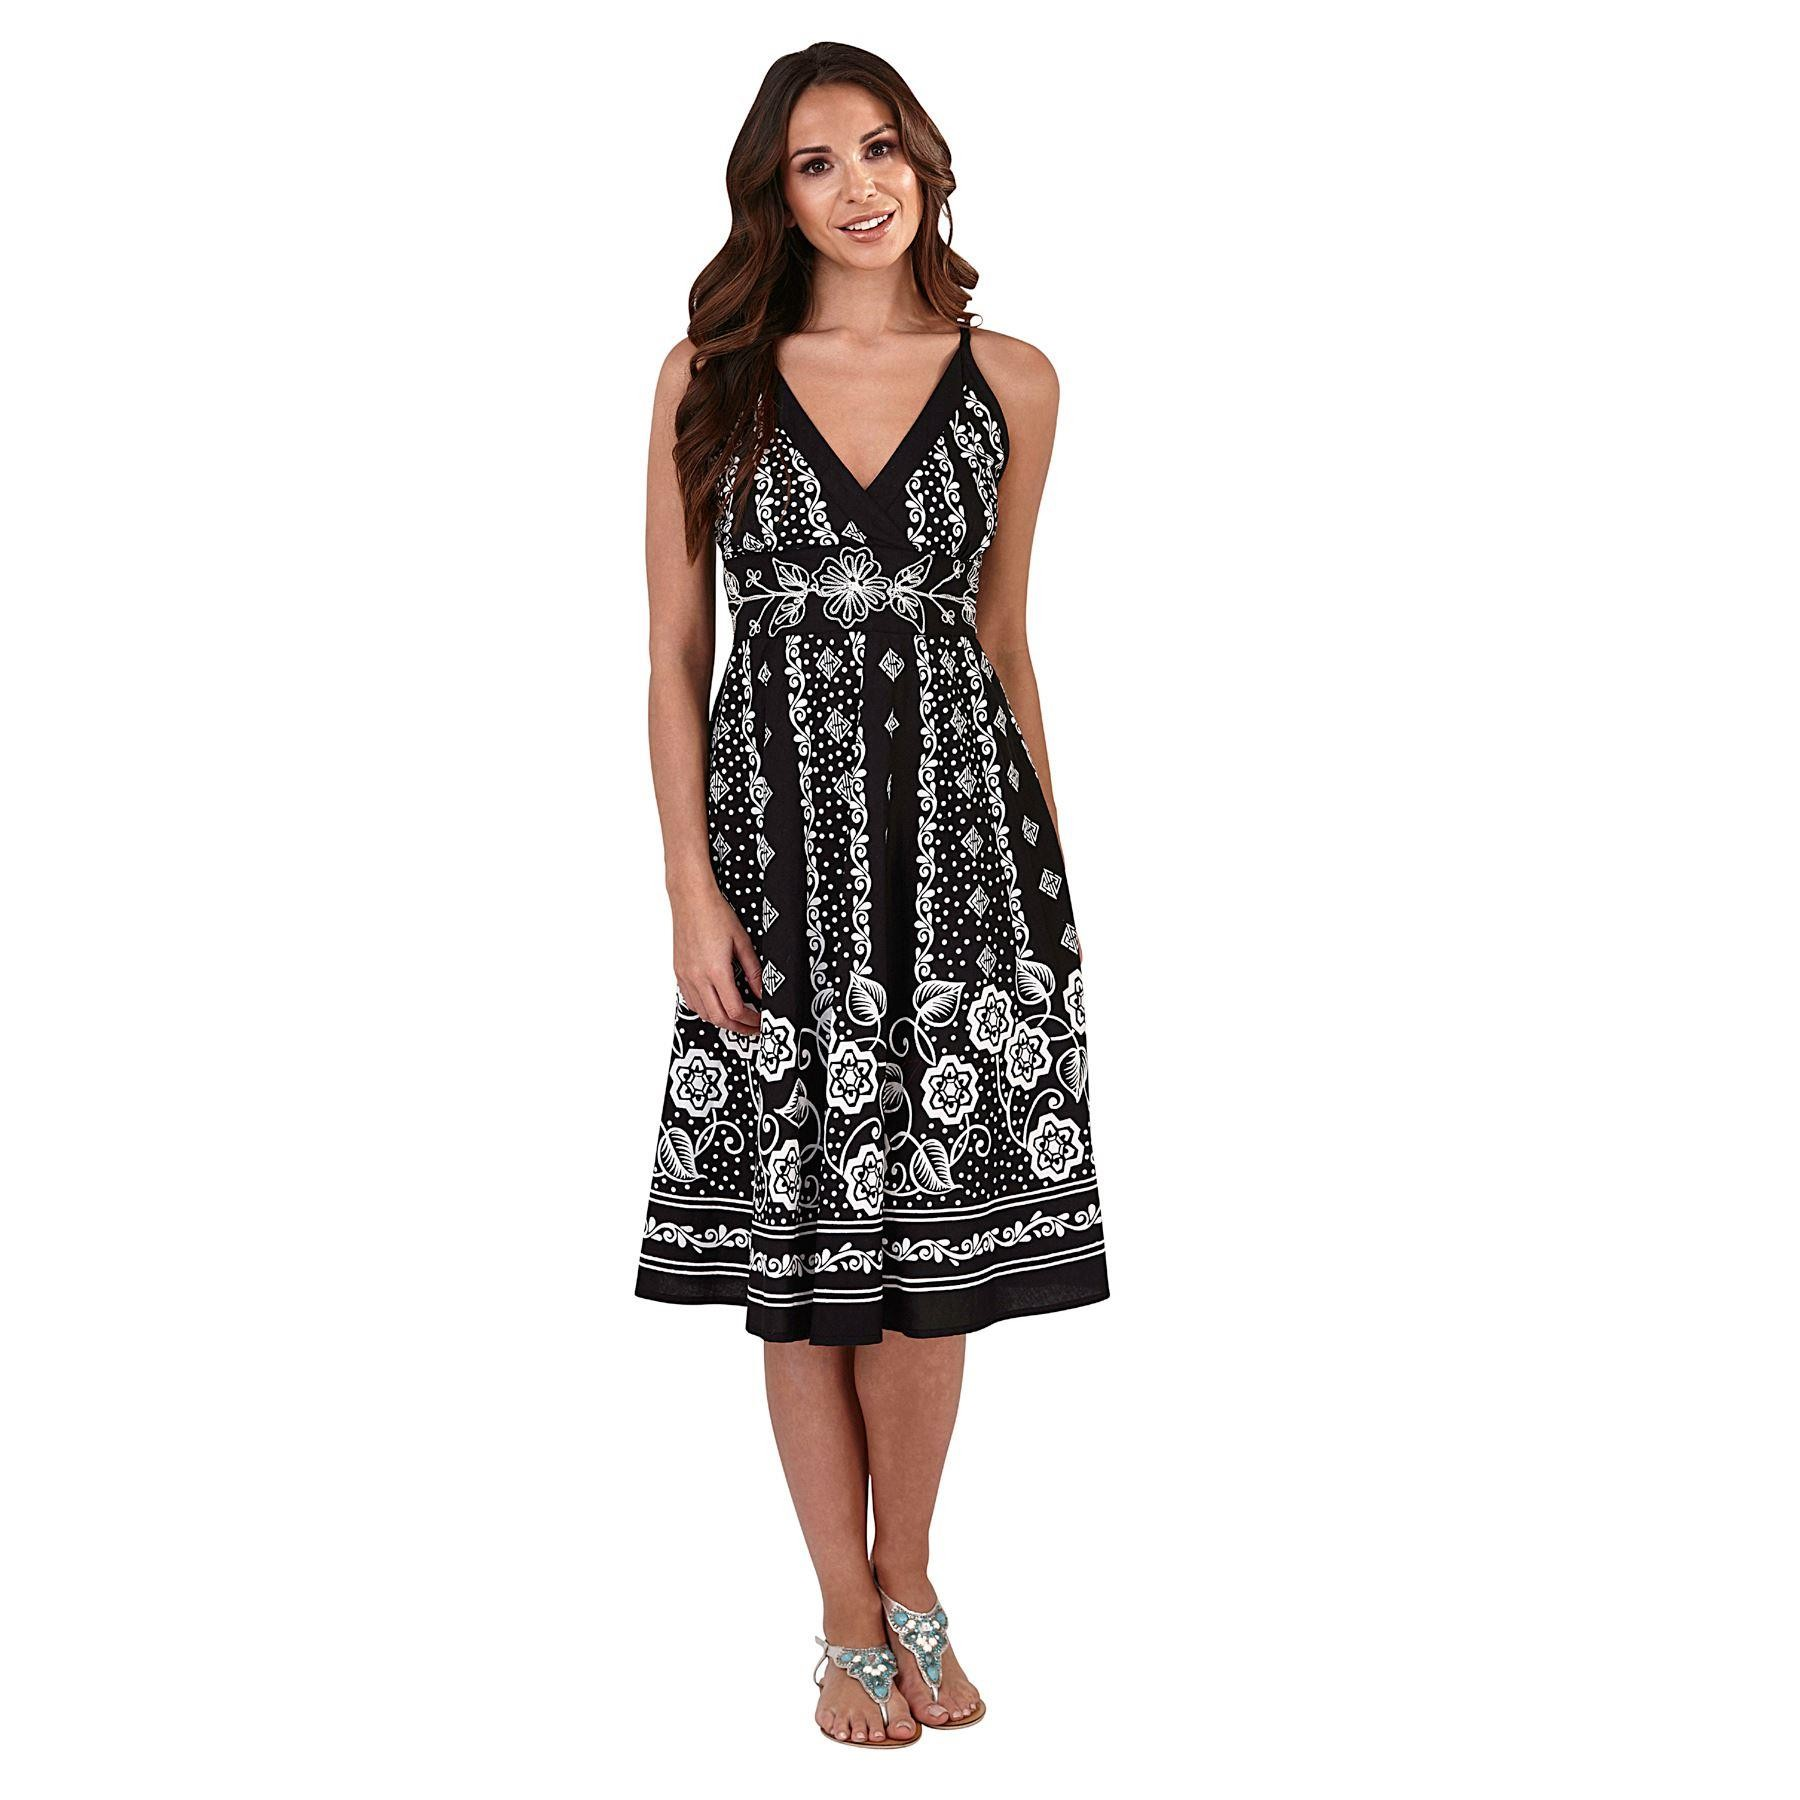 Pistachio Print Crossover Dress - Black/White